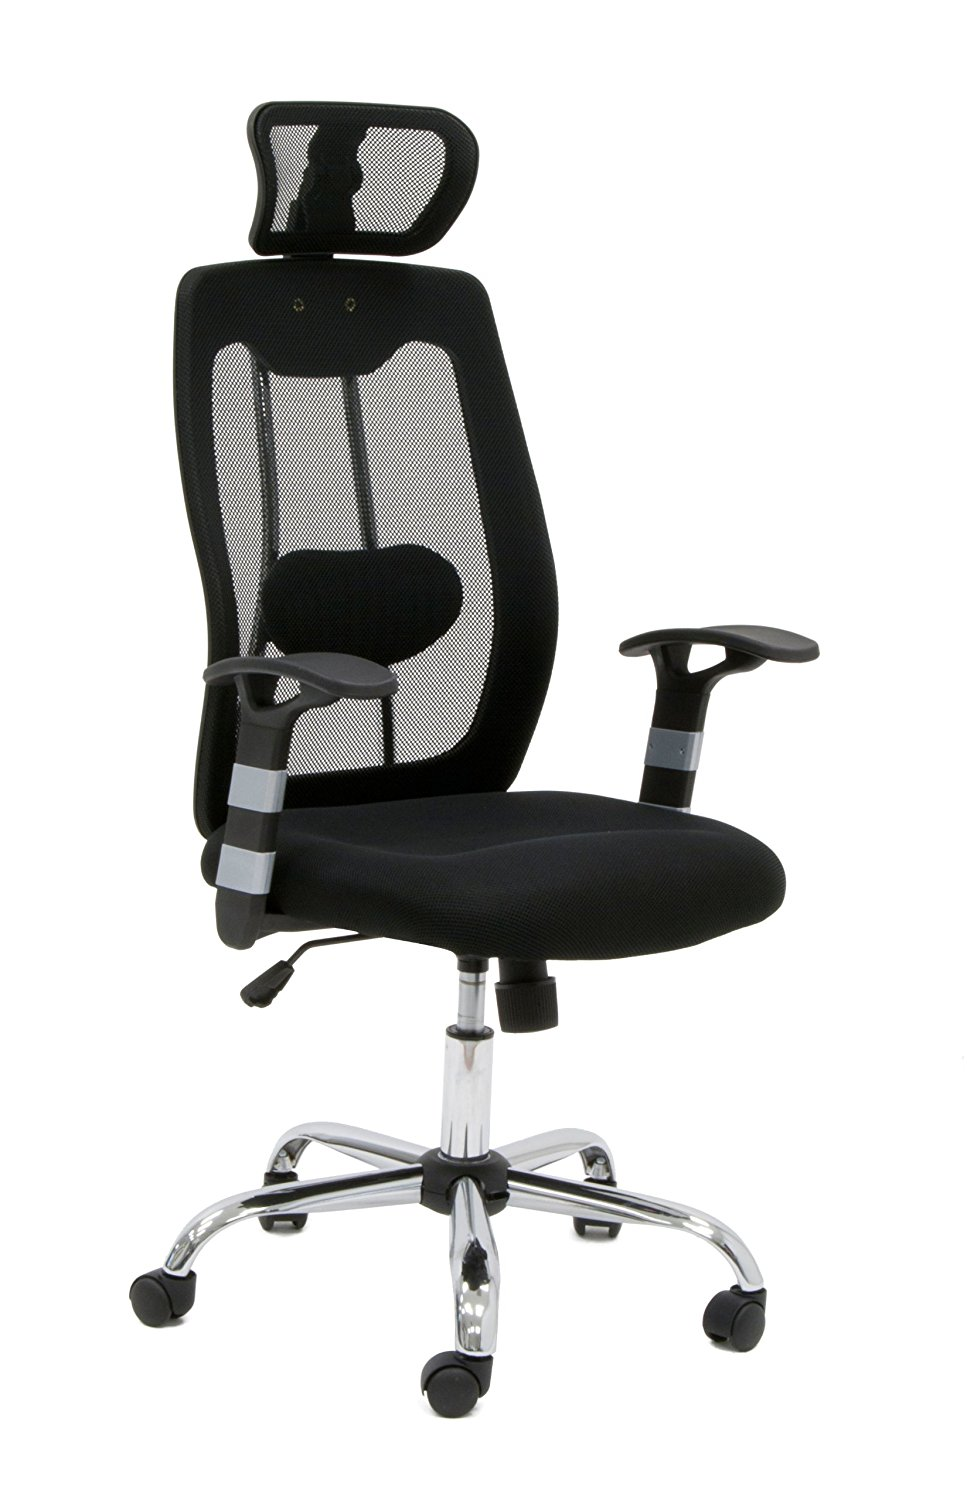 Best Chair For Home Recording Studio  StayOnBeatcom